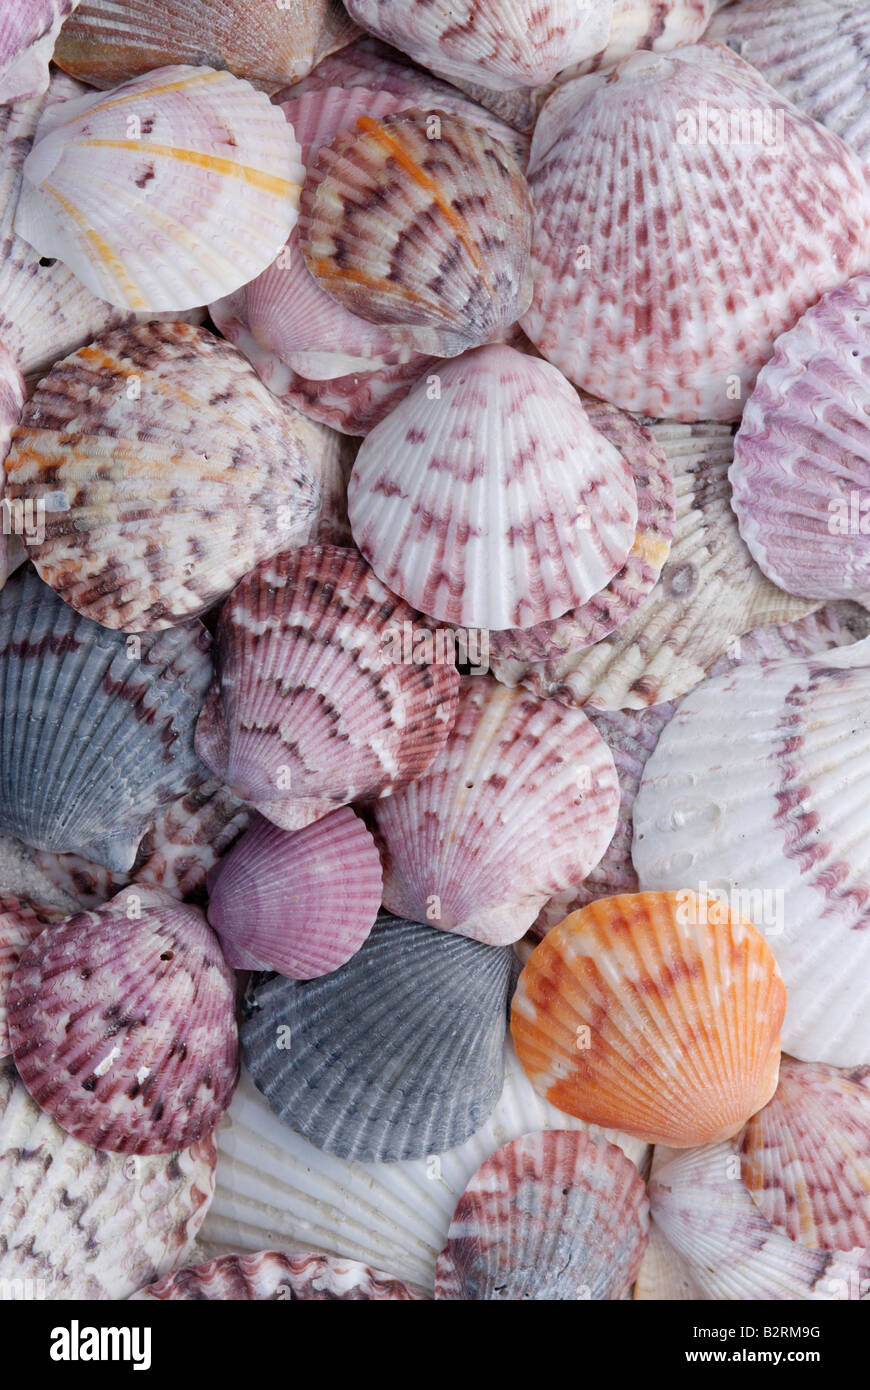 A variety of Atlantic calico scallop Argopecten gibbus shells showing tremendous polymorphism - Stock Image